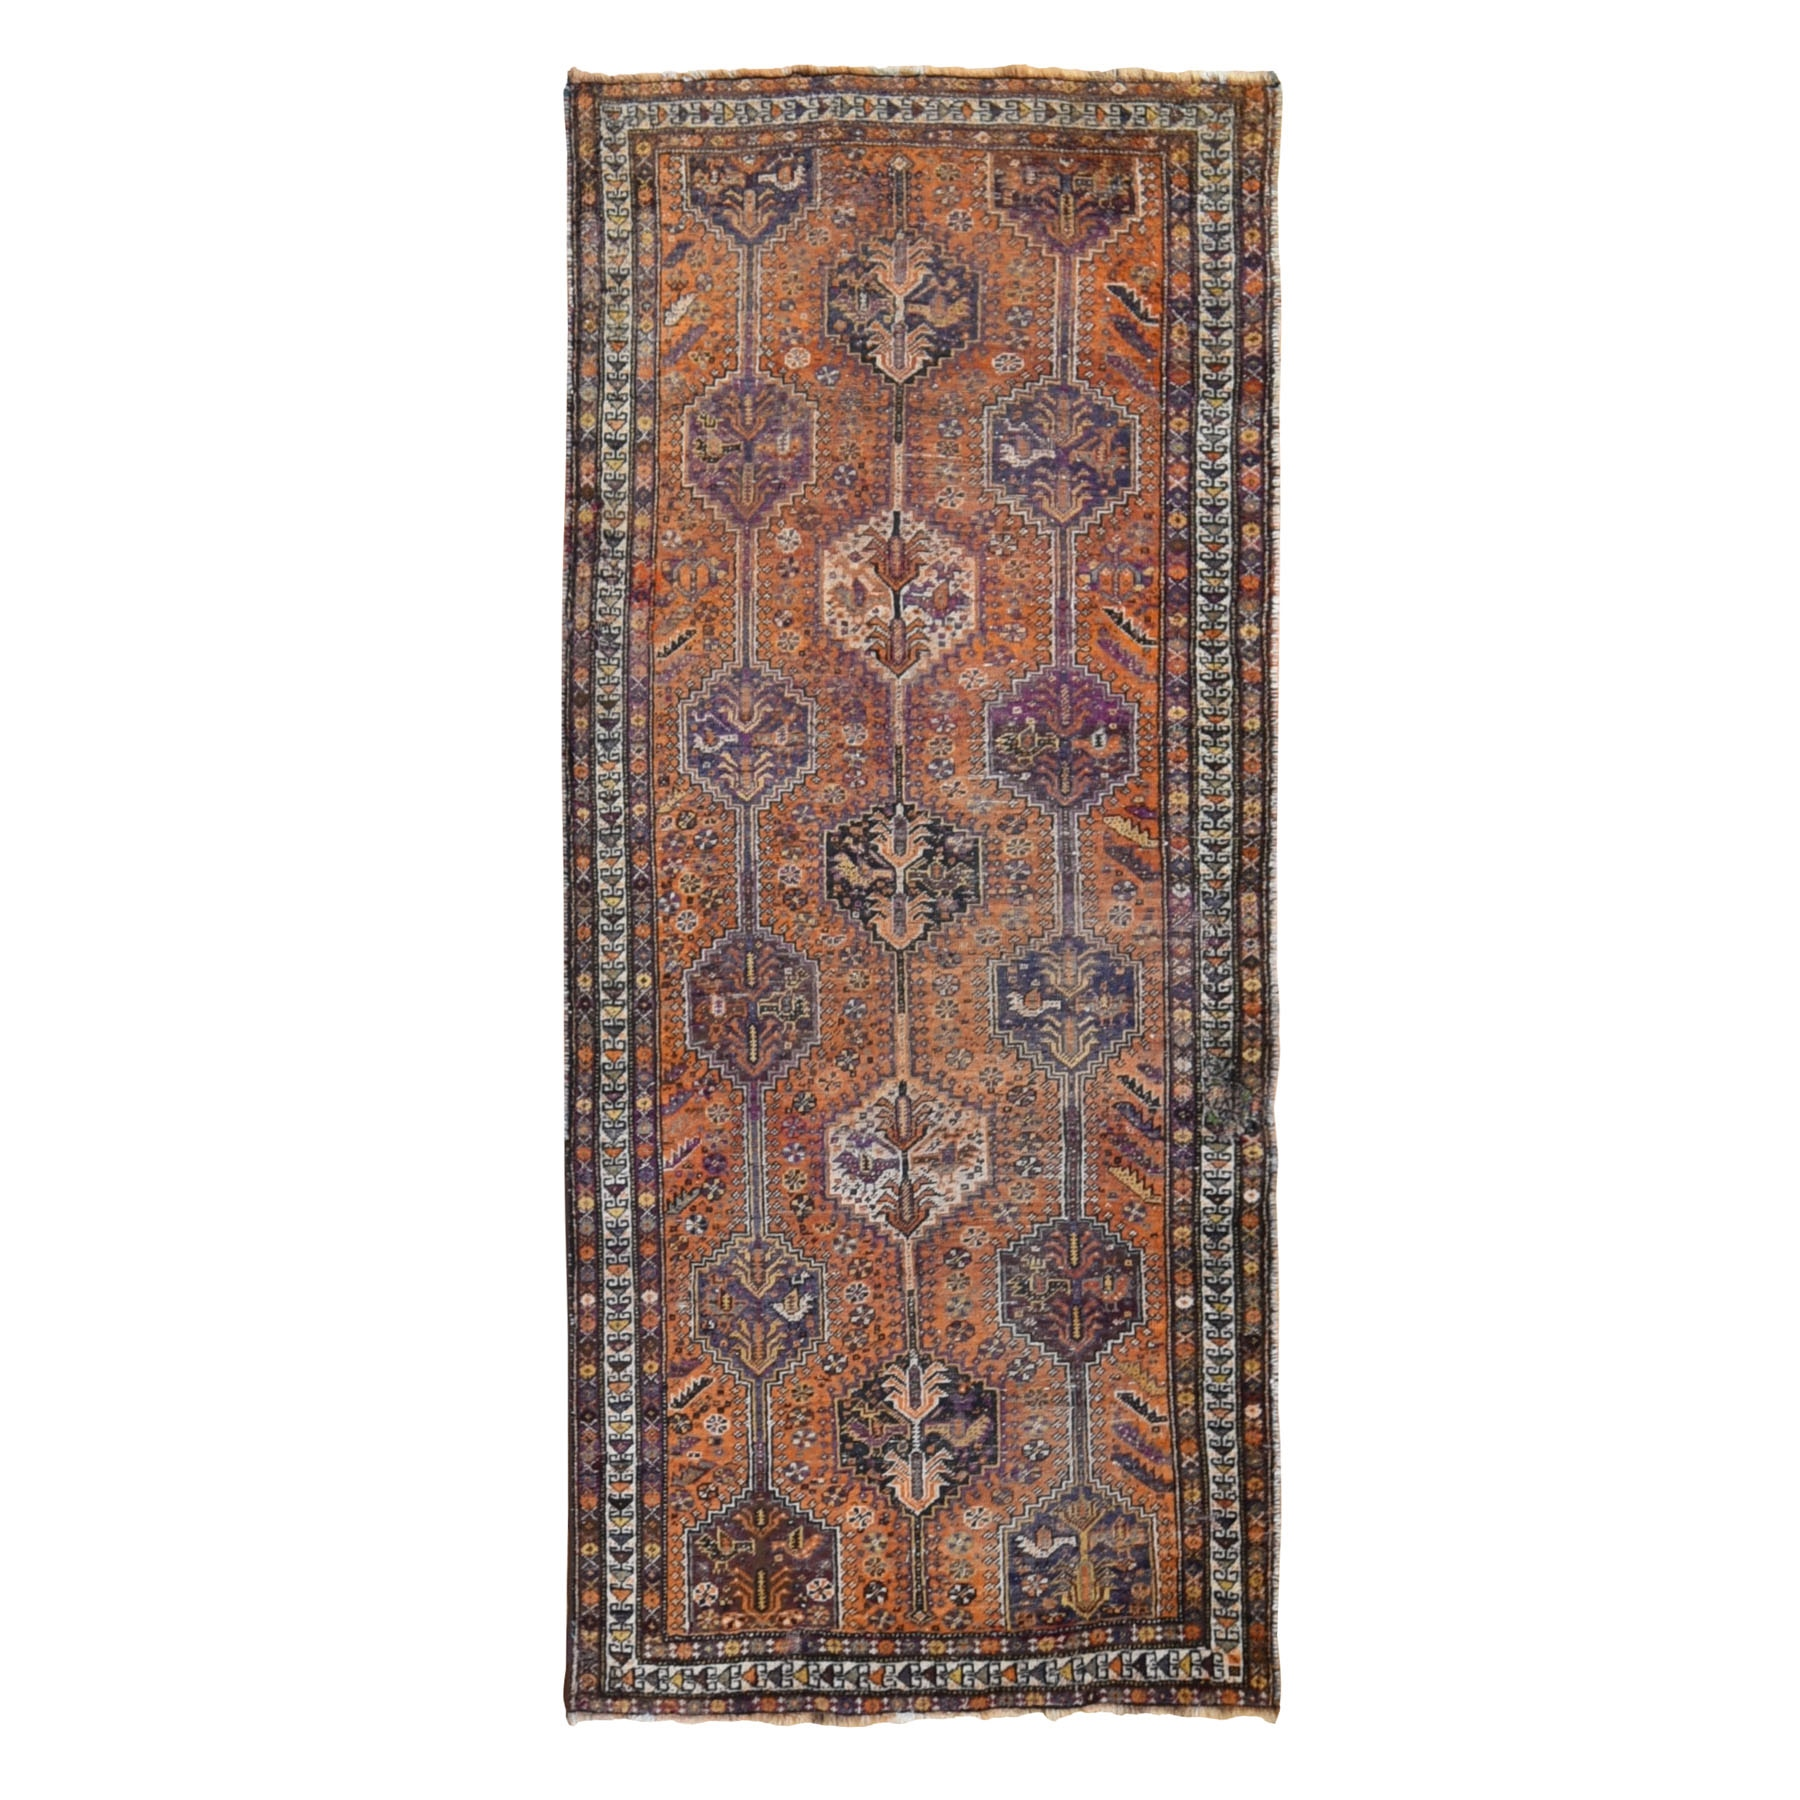 "4'x9'5"" Orange Gallery Size Old Persian Shiraz Worn And Repaired Hand Knotted Oriental Rug"